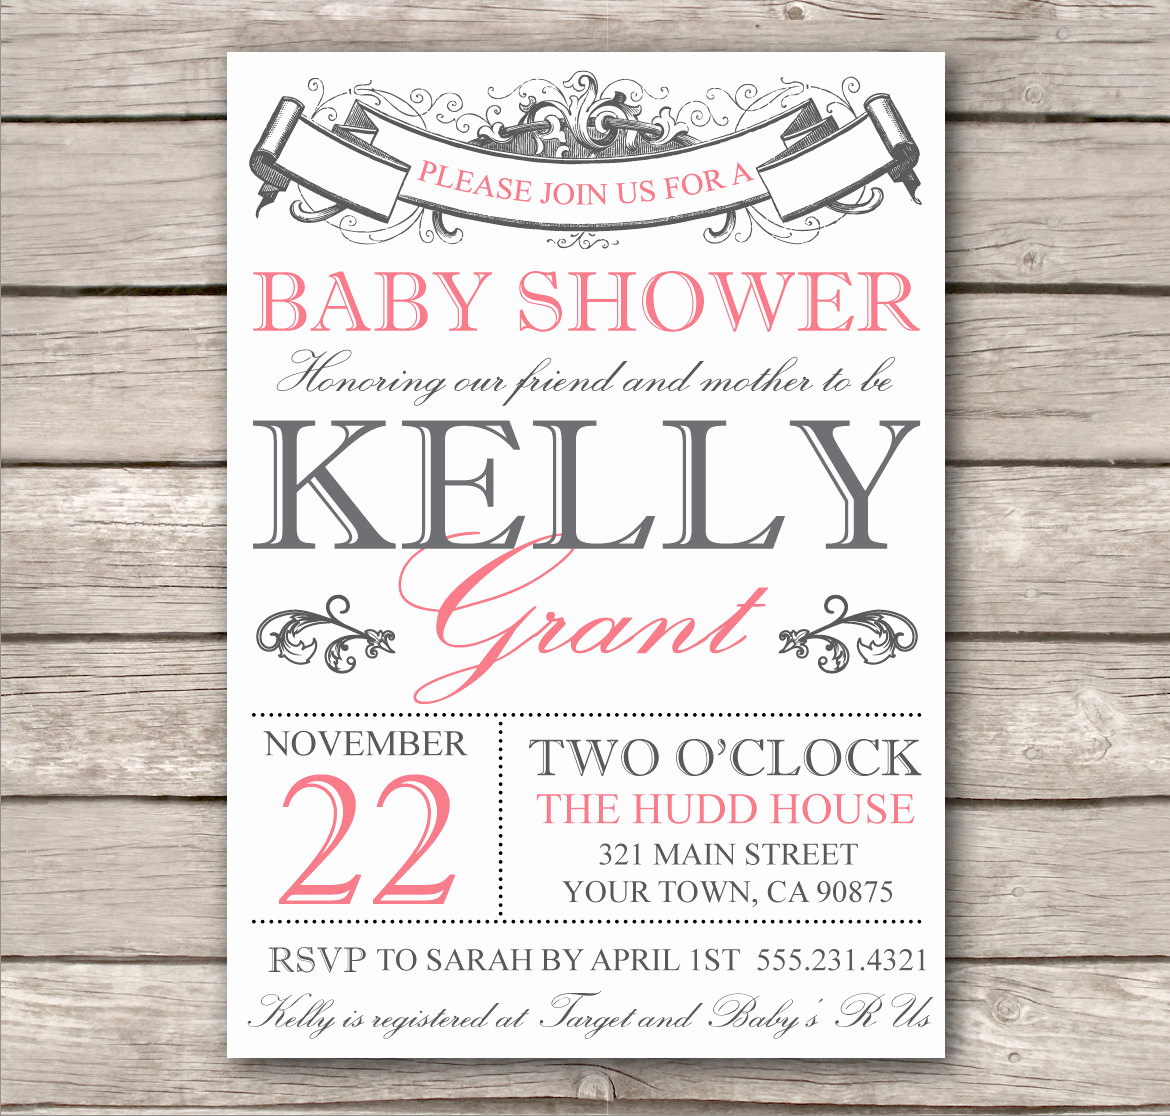 Diy Bridal Shower Invitation Templates Best Of Bridal Shower Invitation or Baby Shower Invitation by